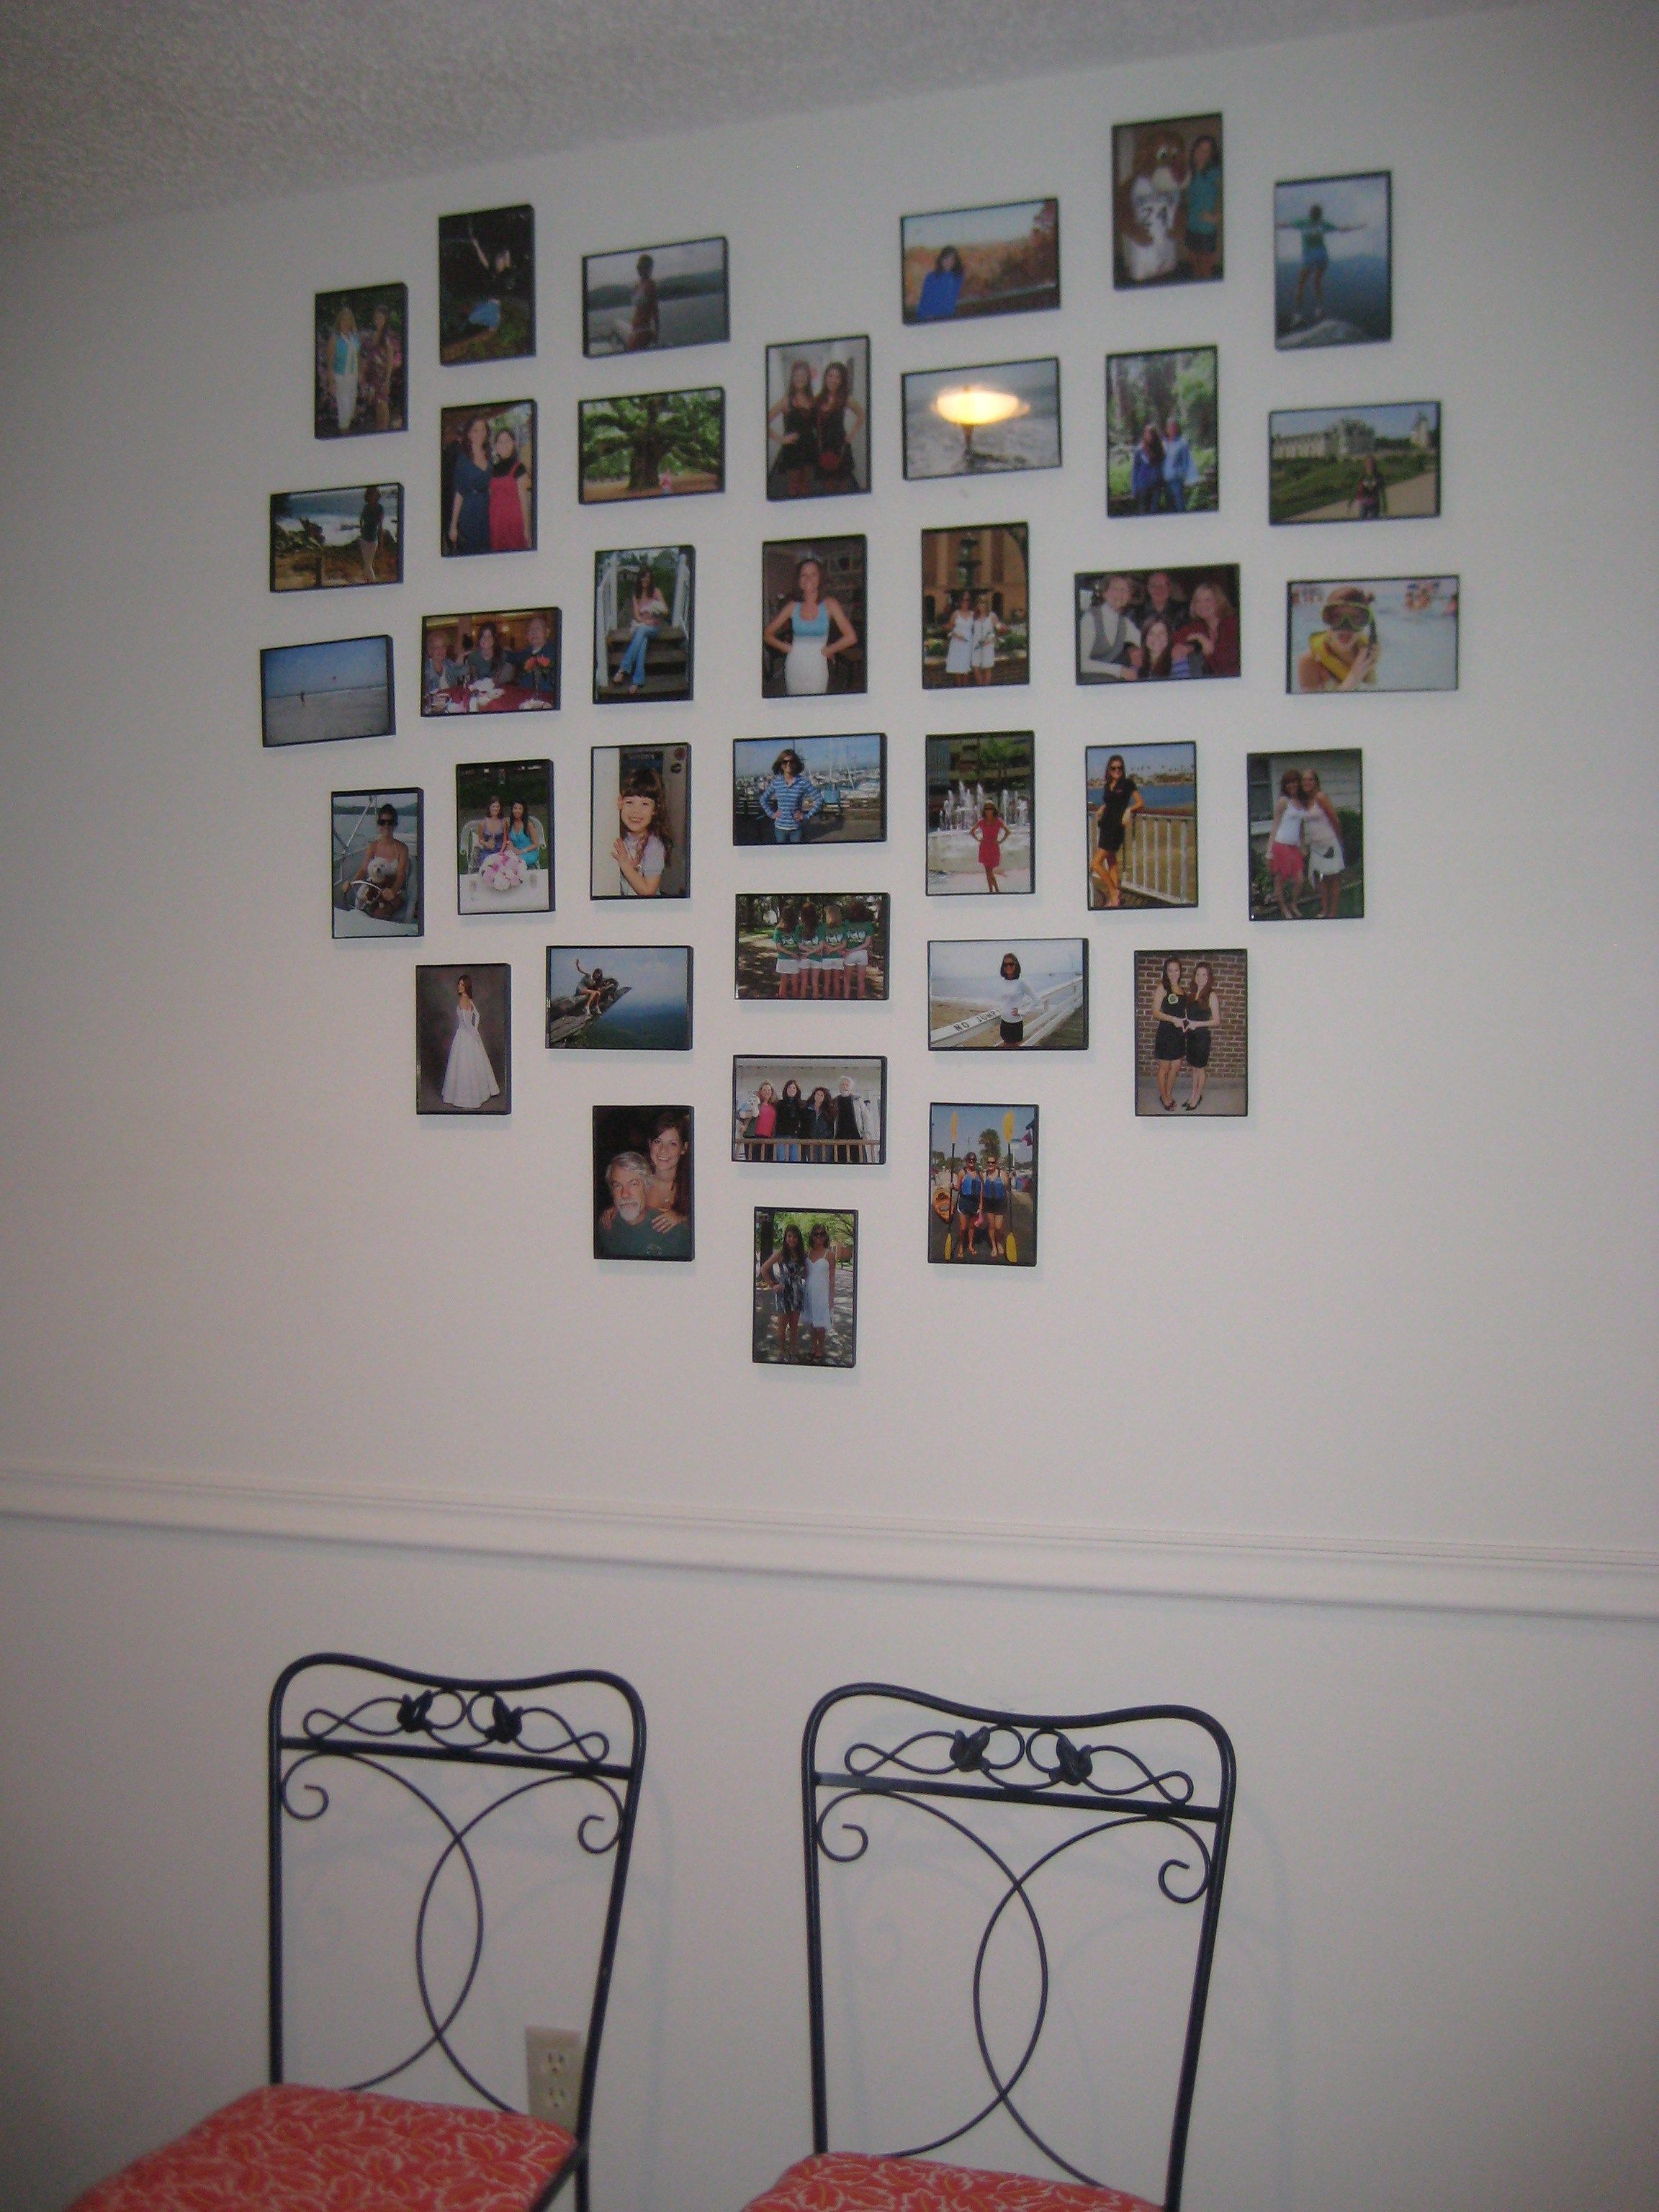 How To Diy Hang A Heart Frame Gallery Wall